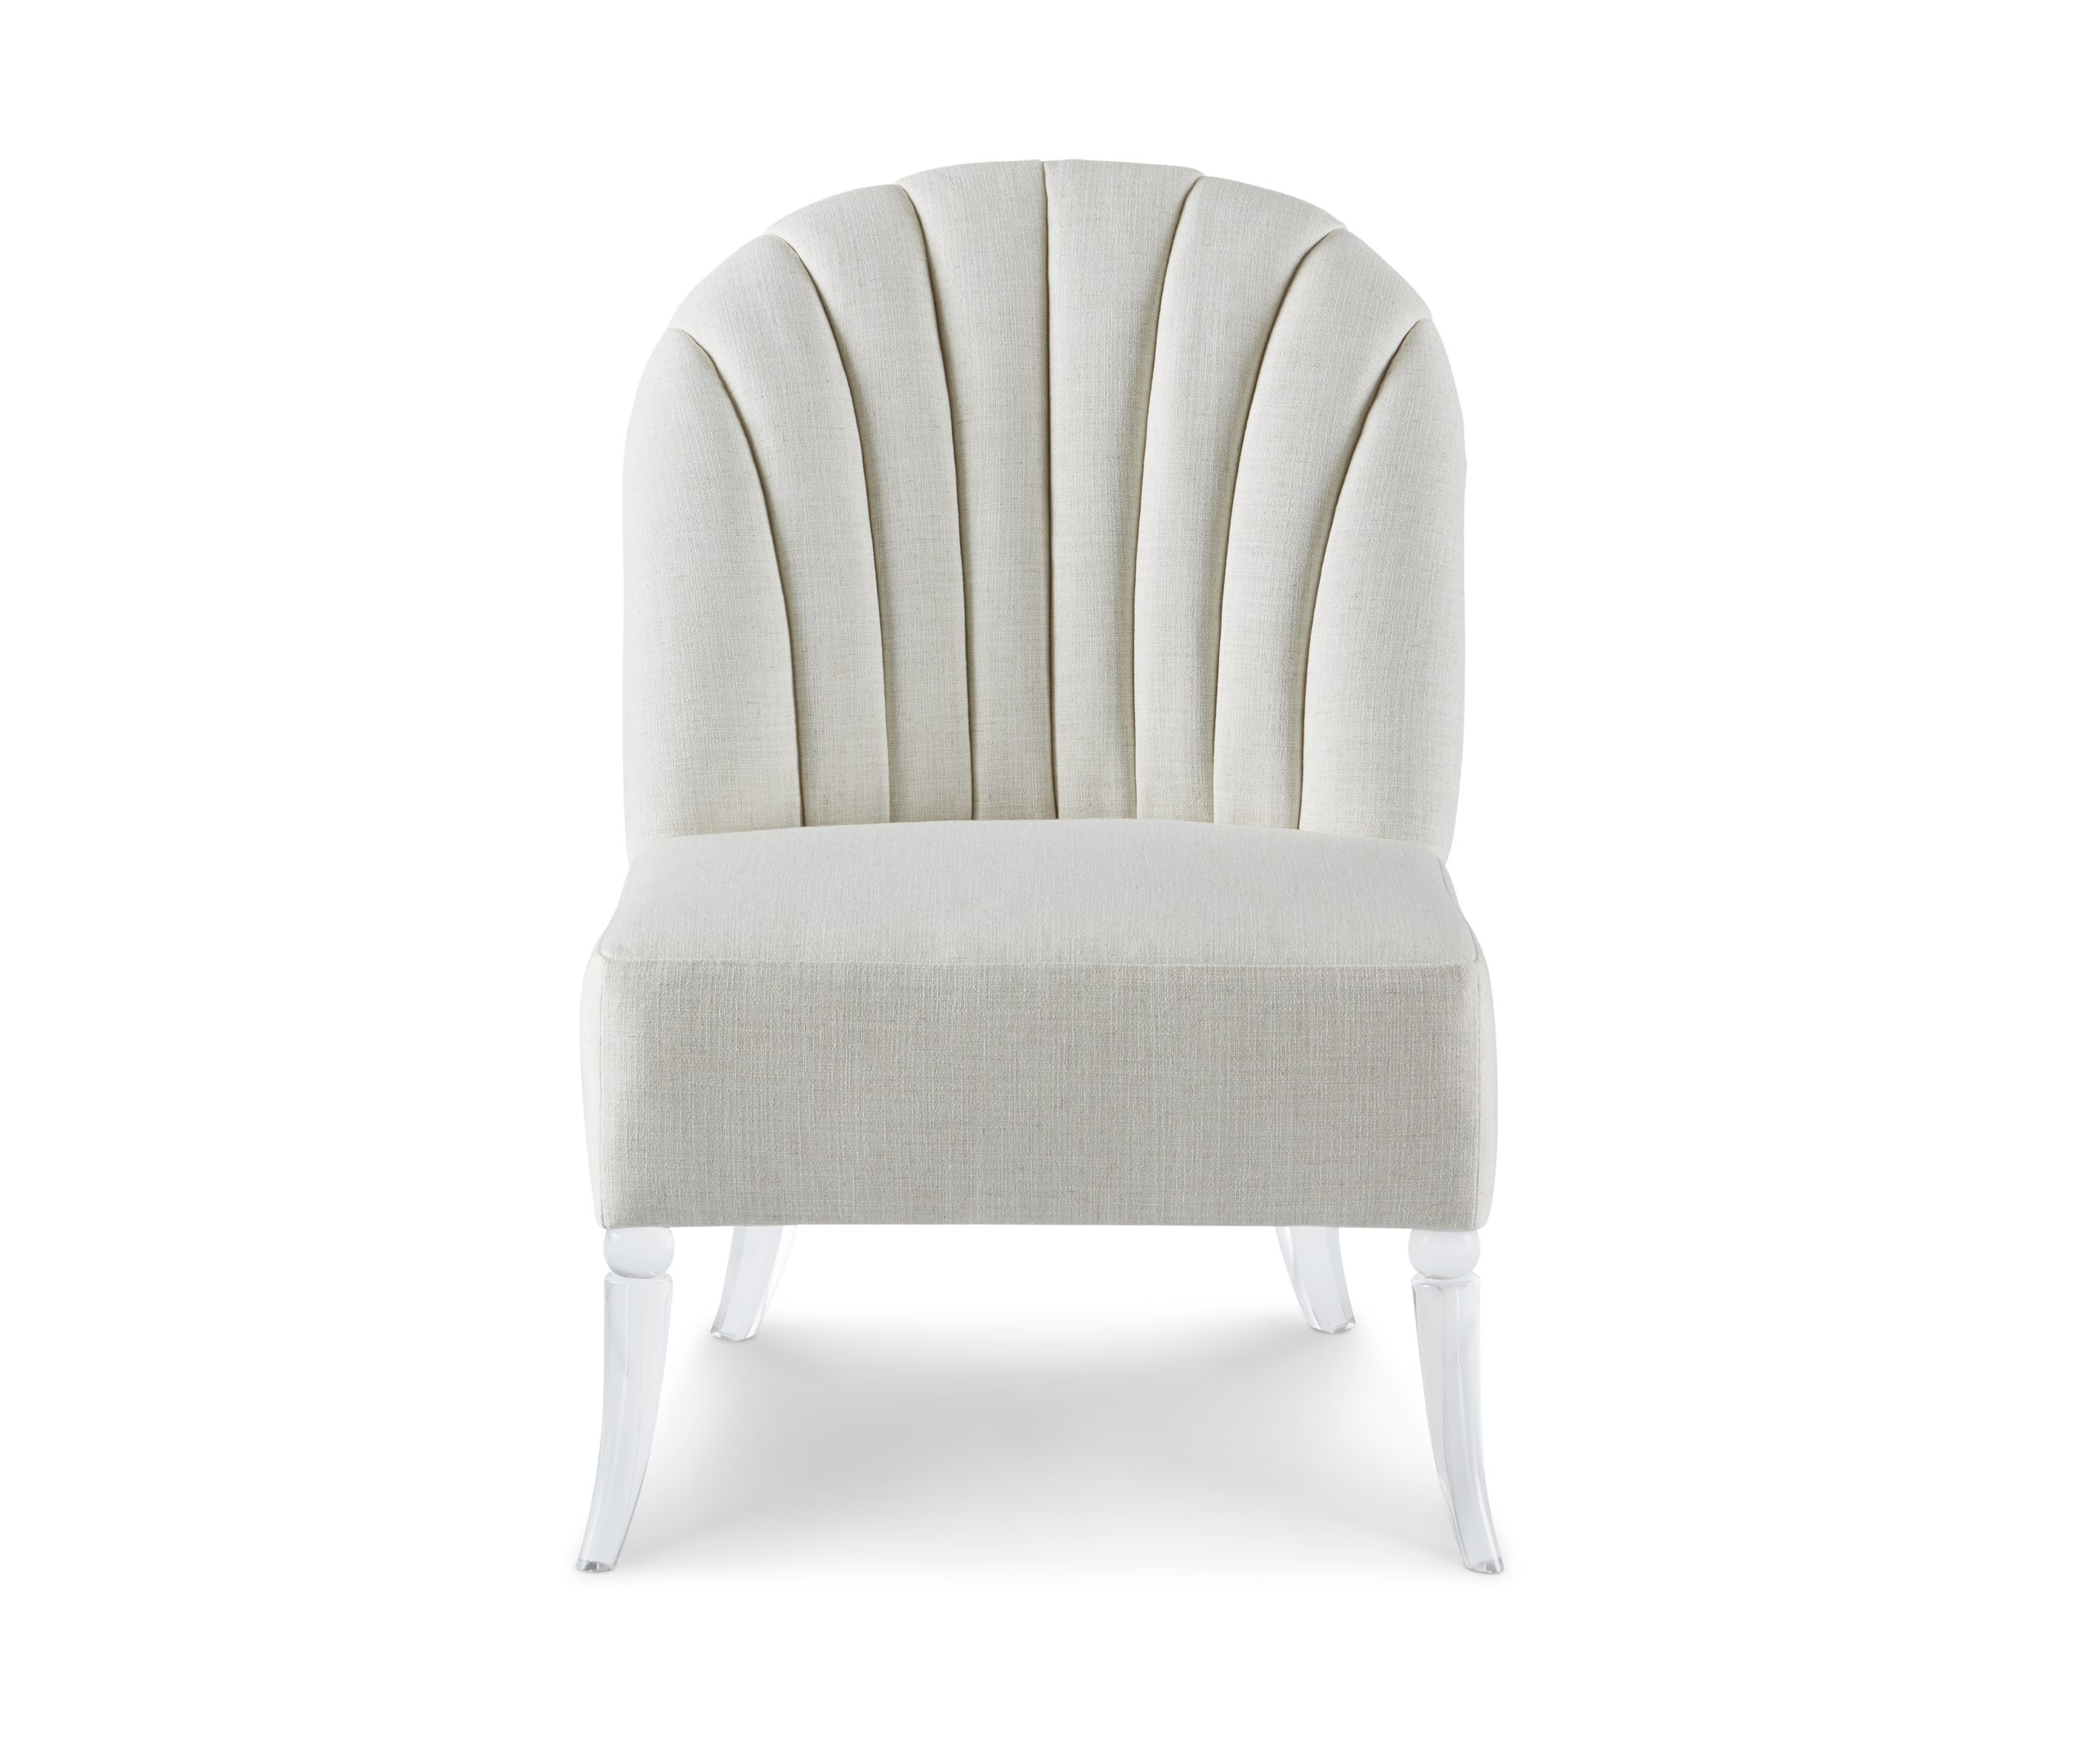 Baker_products_WNWN_lola_chair_BAU3310c_FRONT-scaled-1